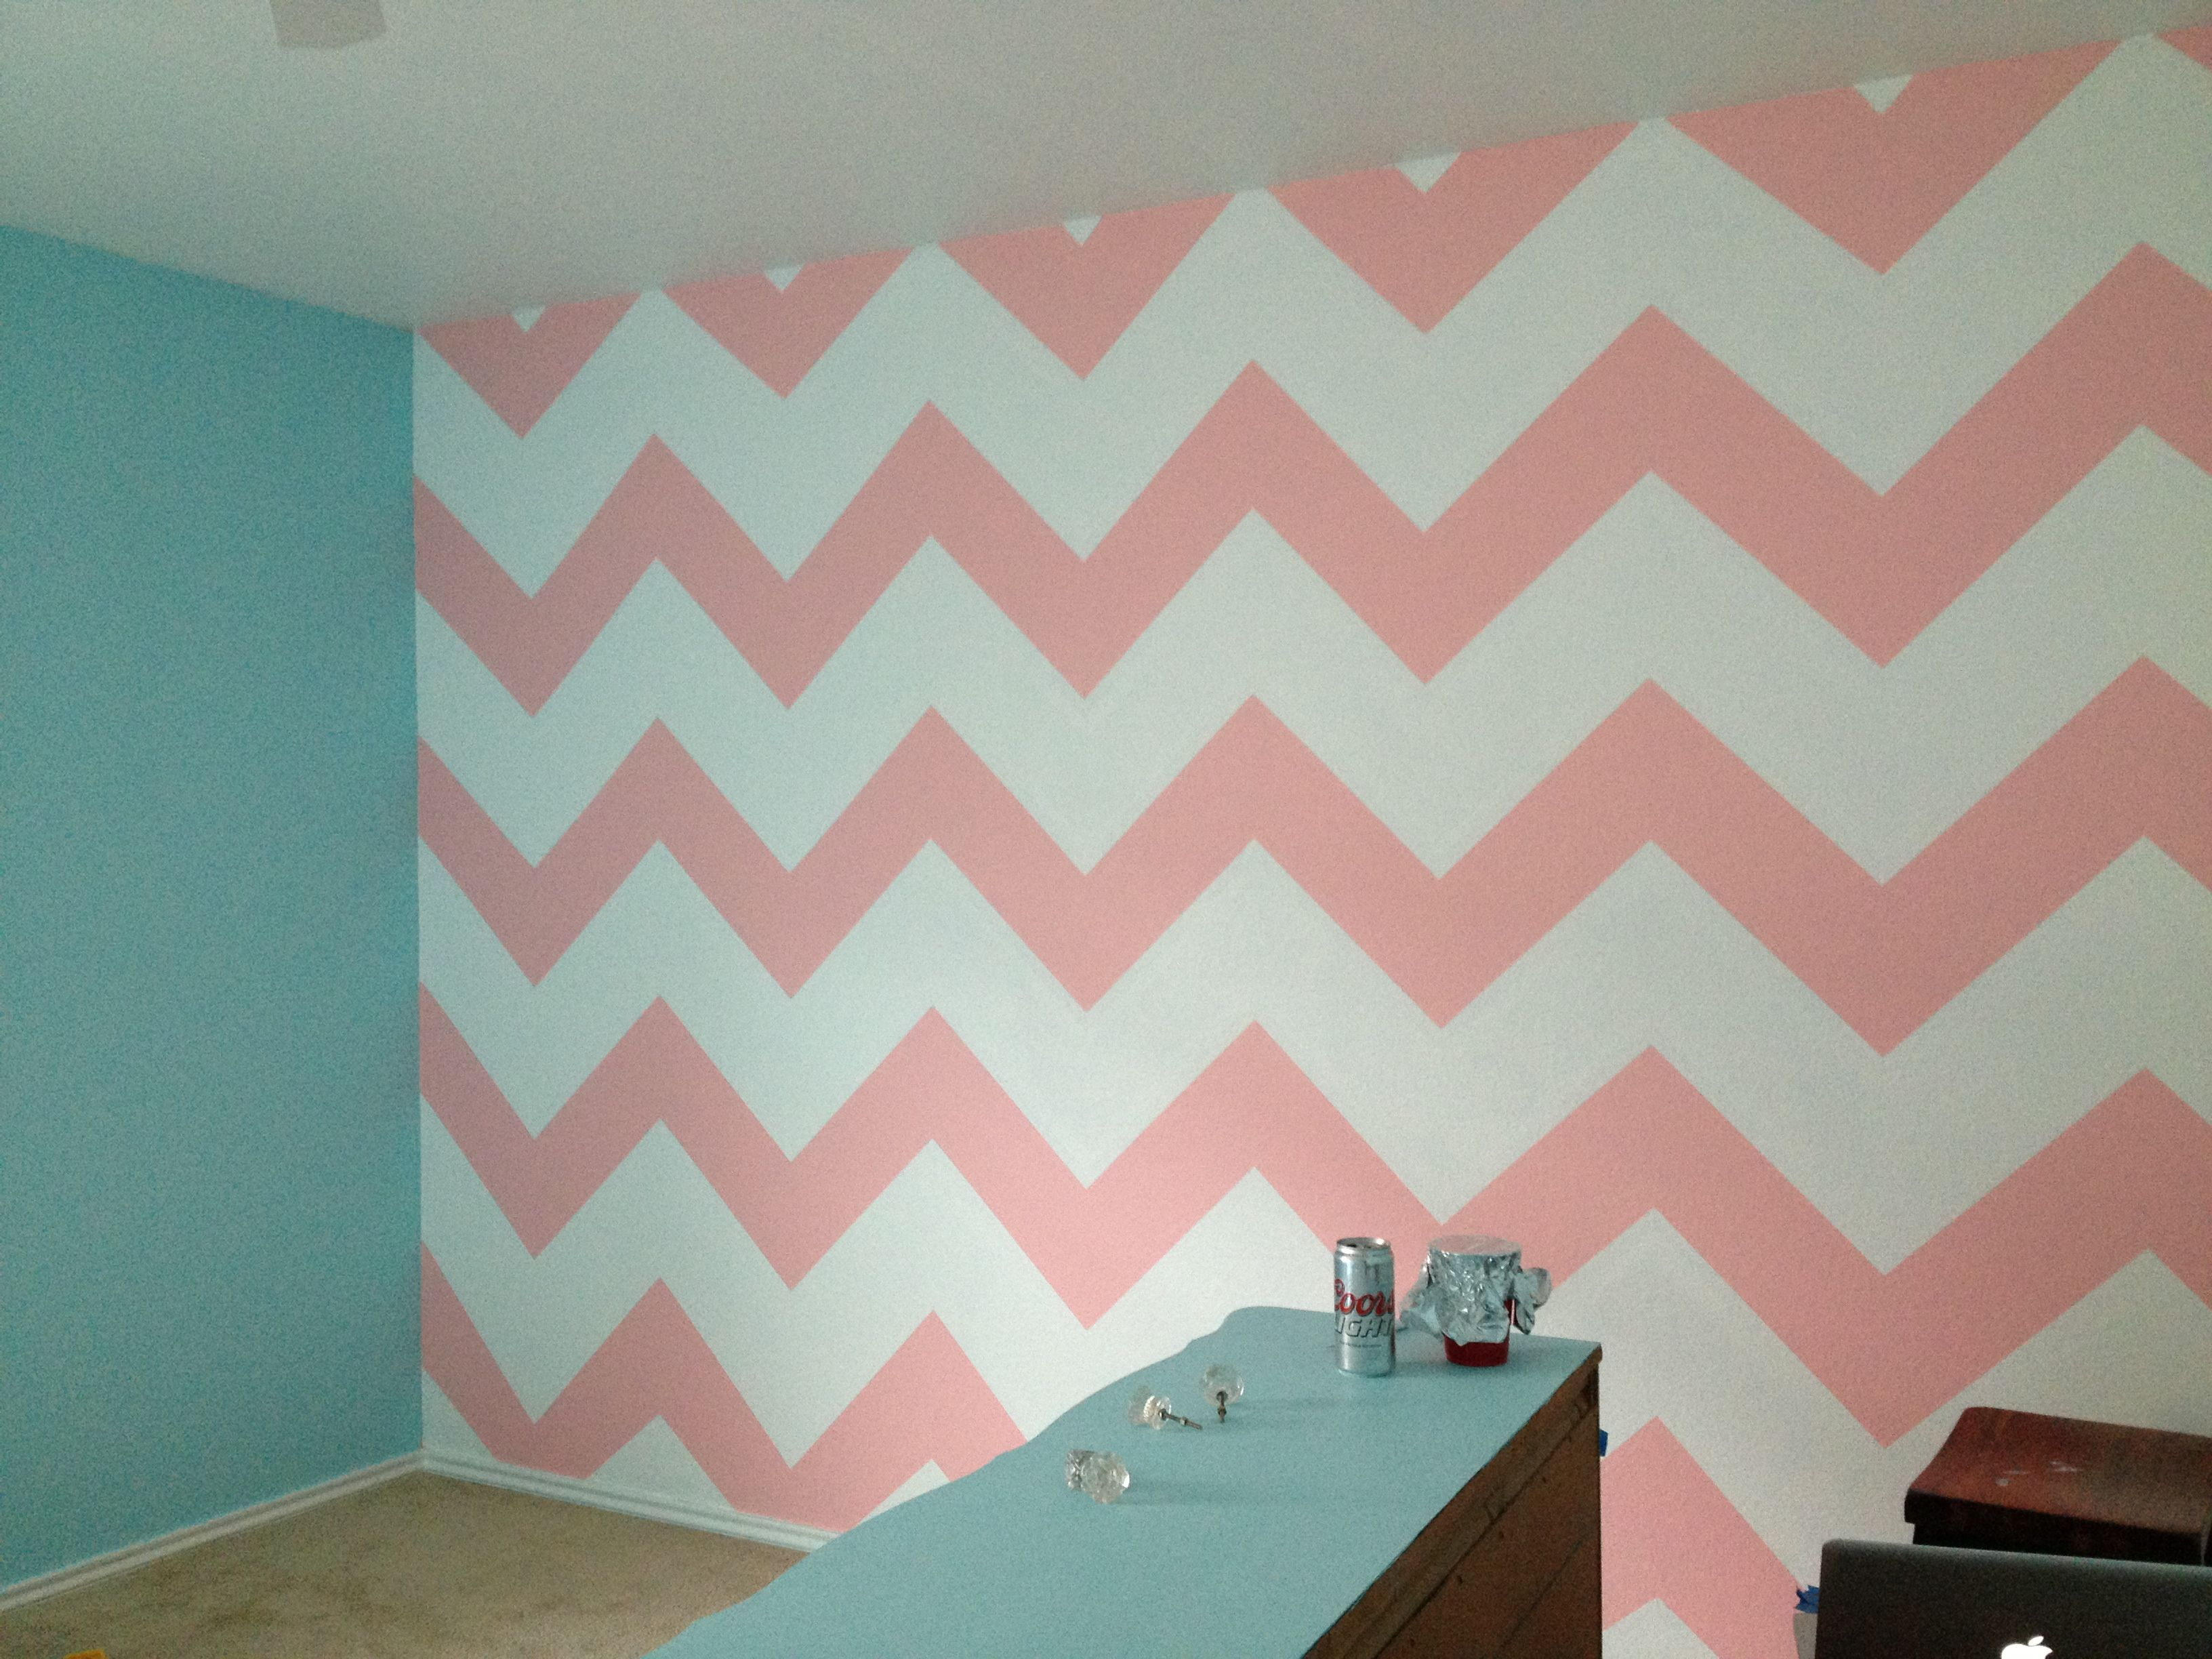 Chevron Wall Fur Nursery Rose Gold Wall Paint Gold Painted